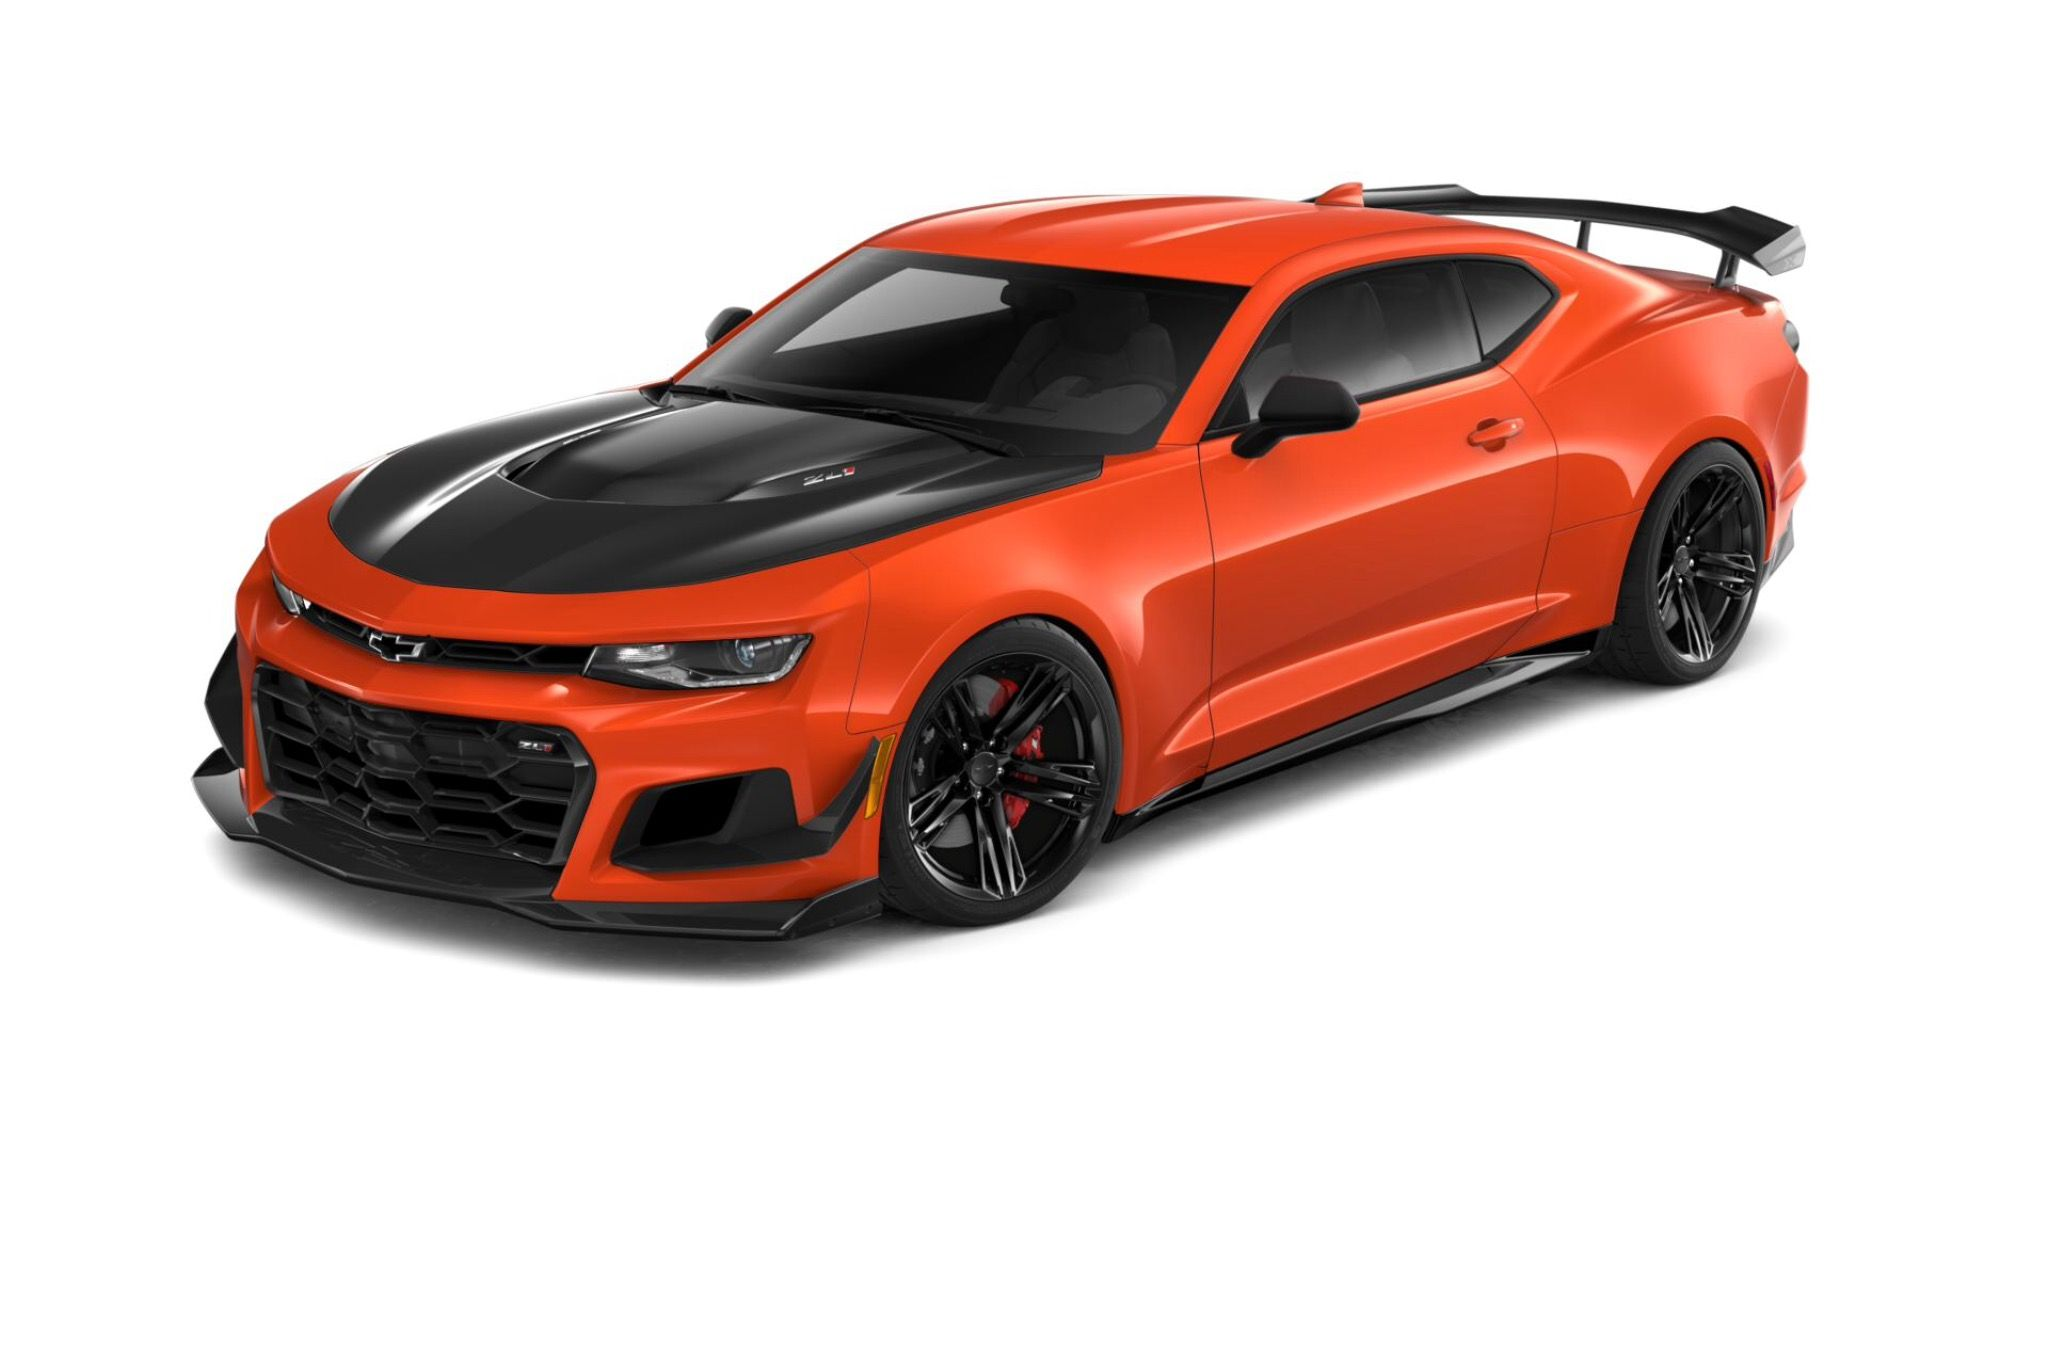 Rendering Of A 2019 Camaro Zl1 1le Painted In Crush Chevy Camaro Zl1 2019 Camaro Camaro Zl1